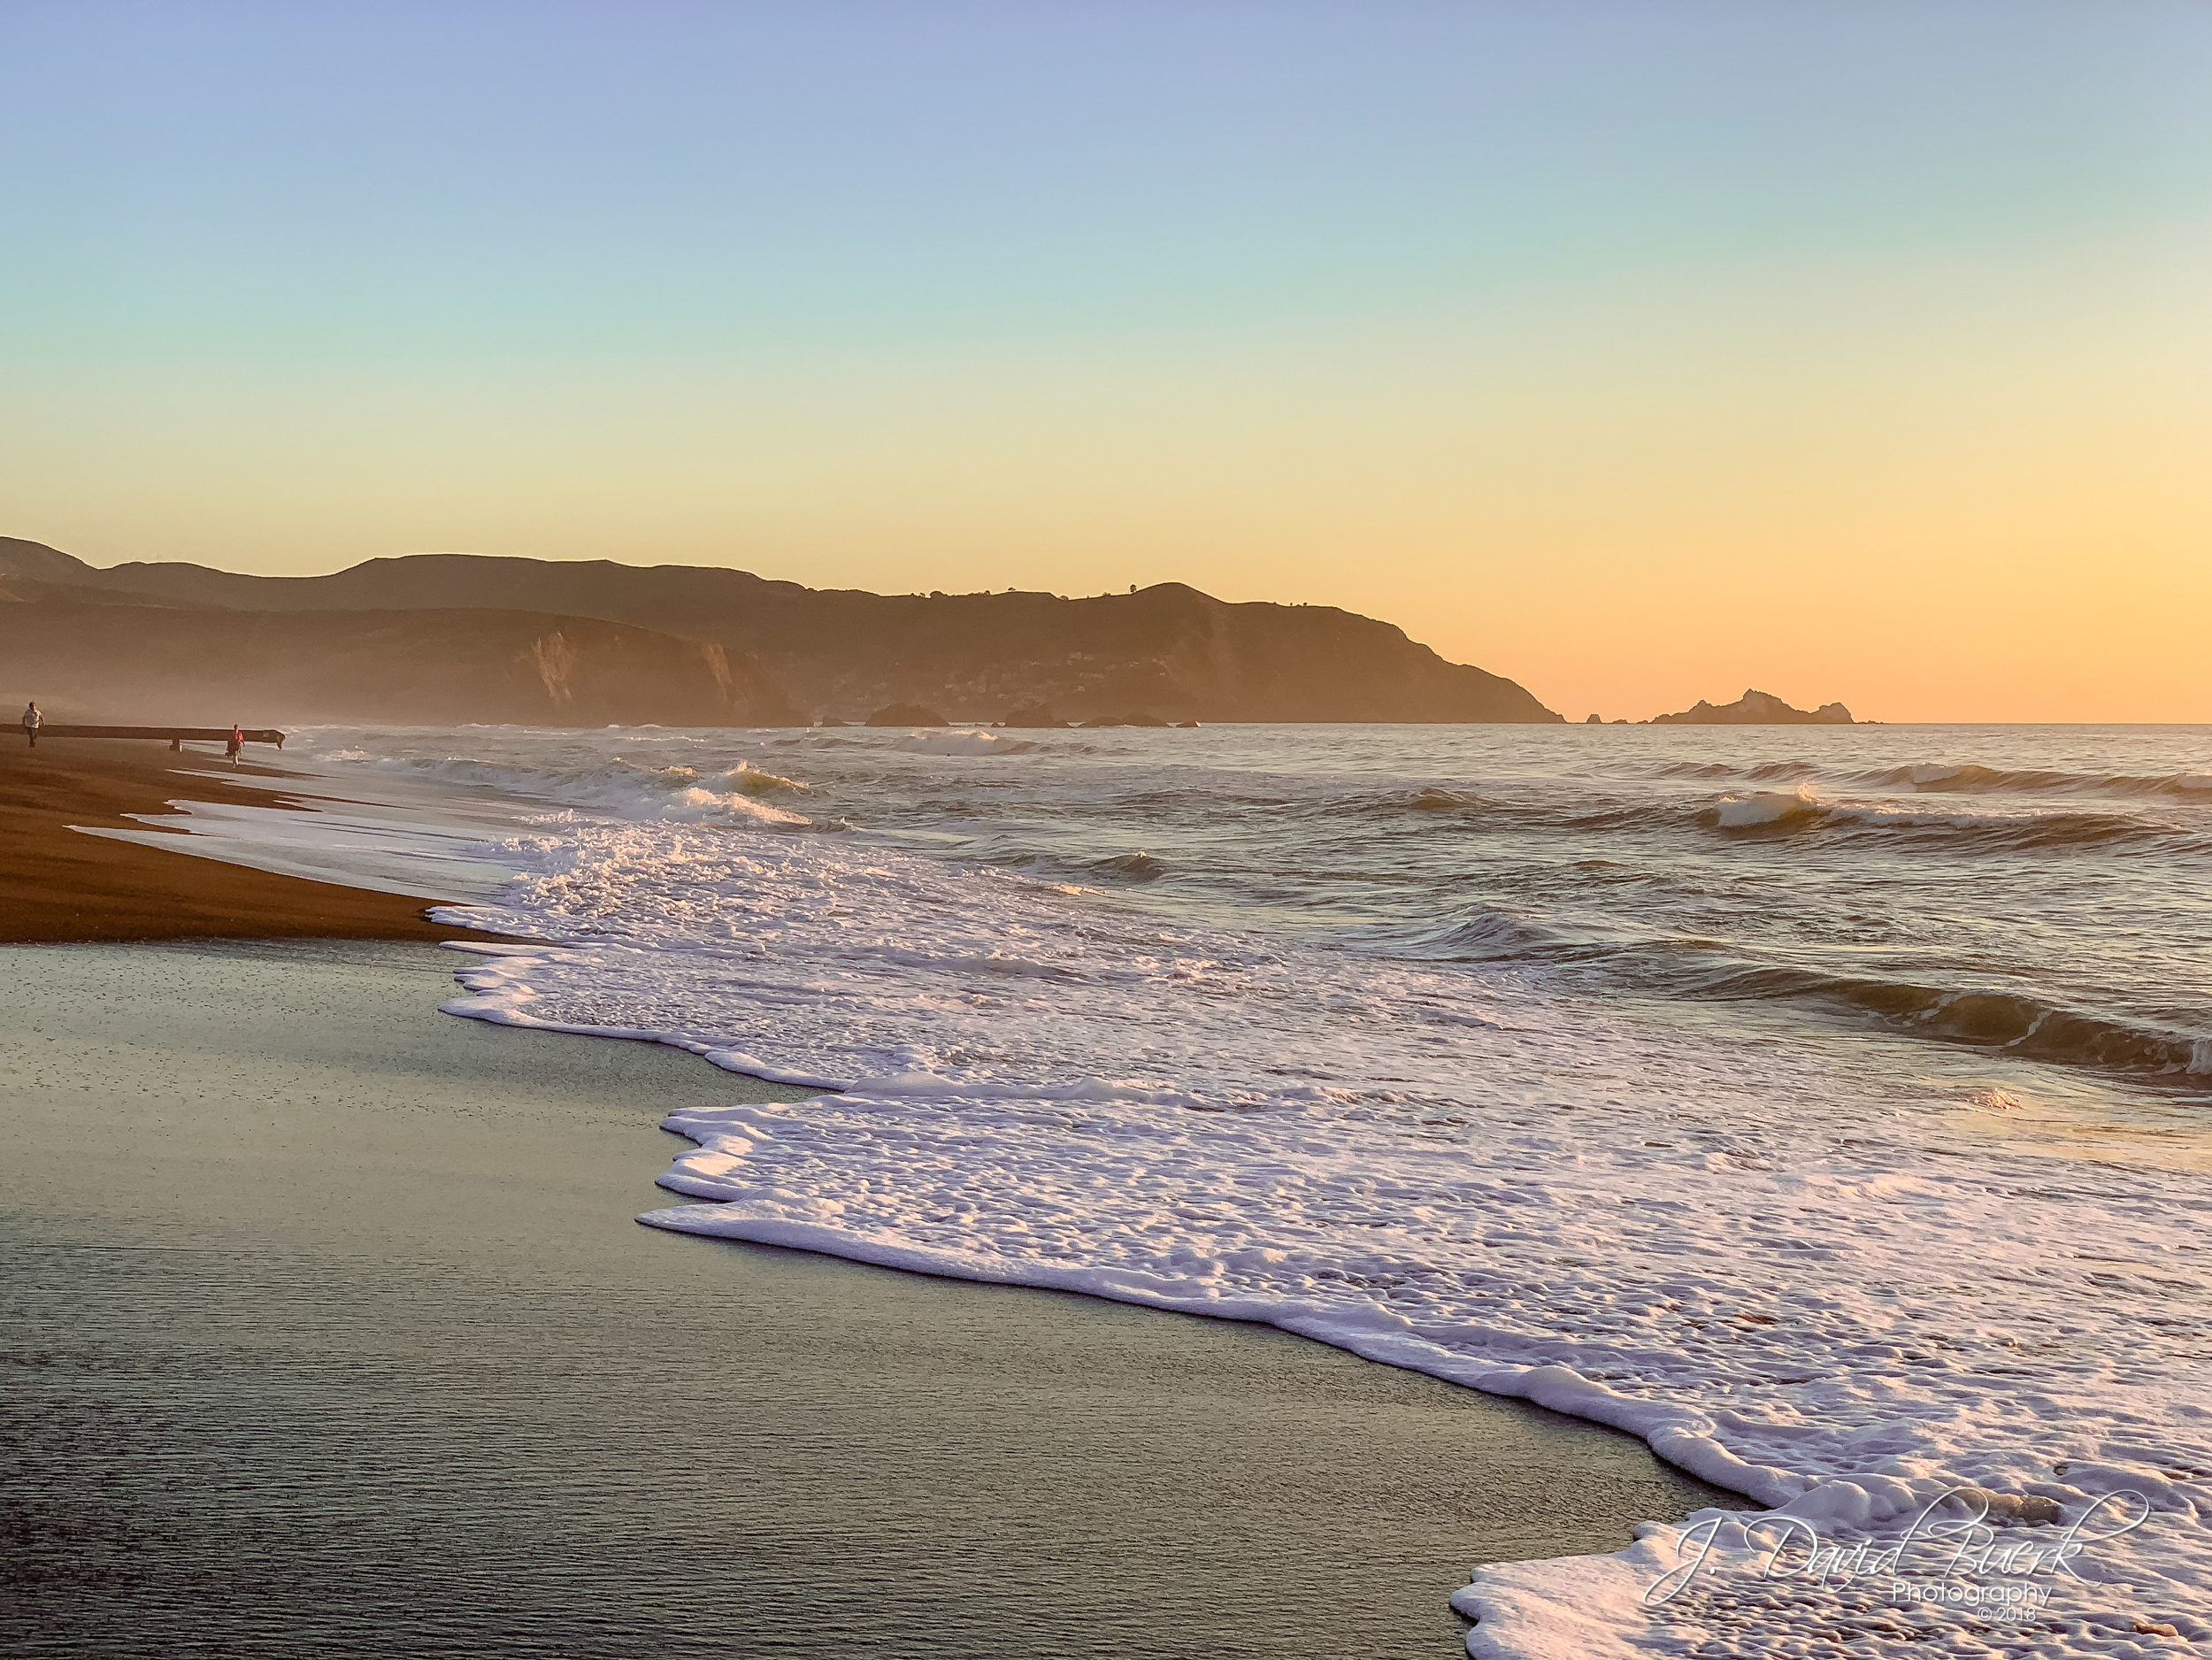 Pacifica Beach, Pacifica, California at sunset. My first full West coast sunset. Shot and edited entirely on iPhone XS.